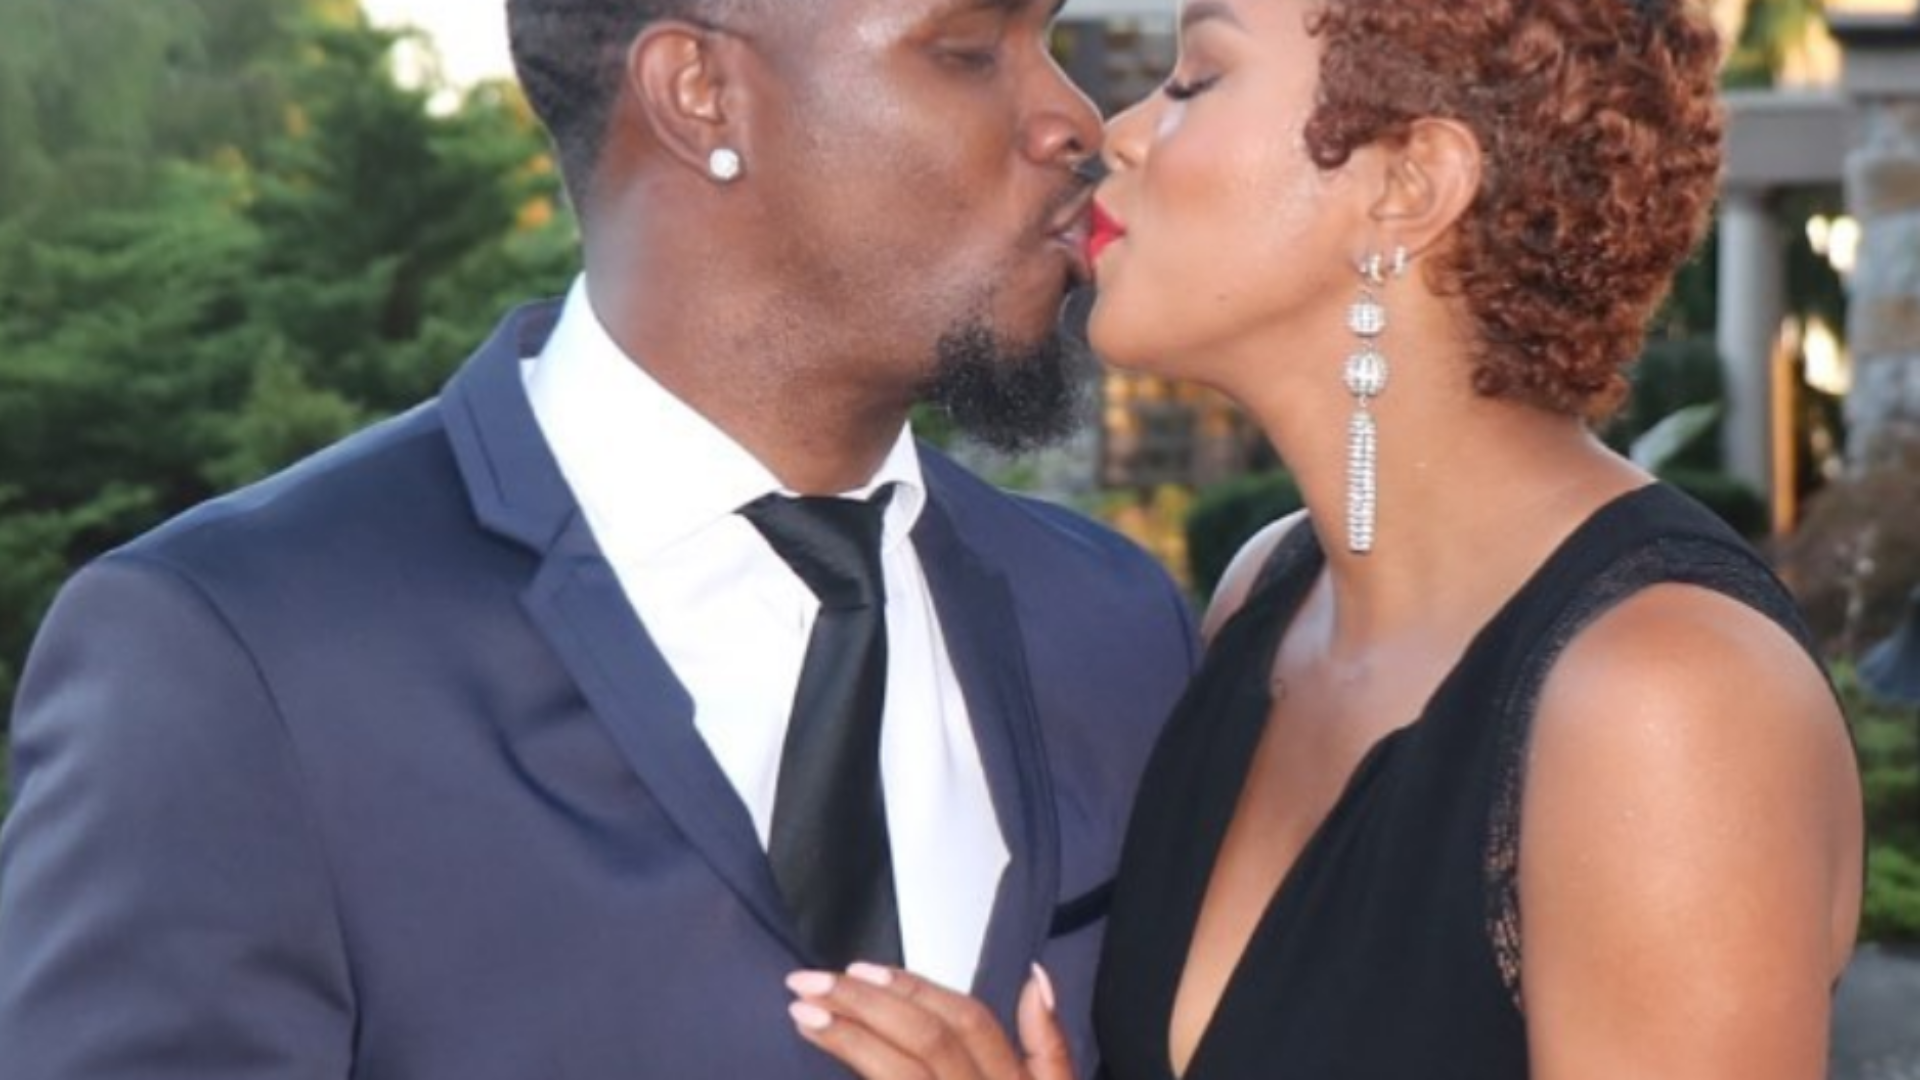 New Parents LeToya Luckett and Tommicus Walker Were All Smiles On Their Post-Baby Date Night